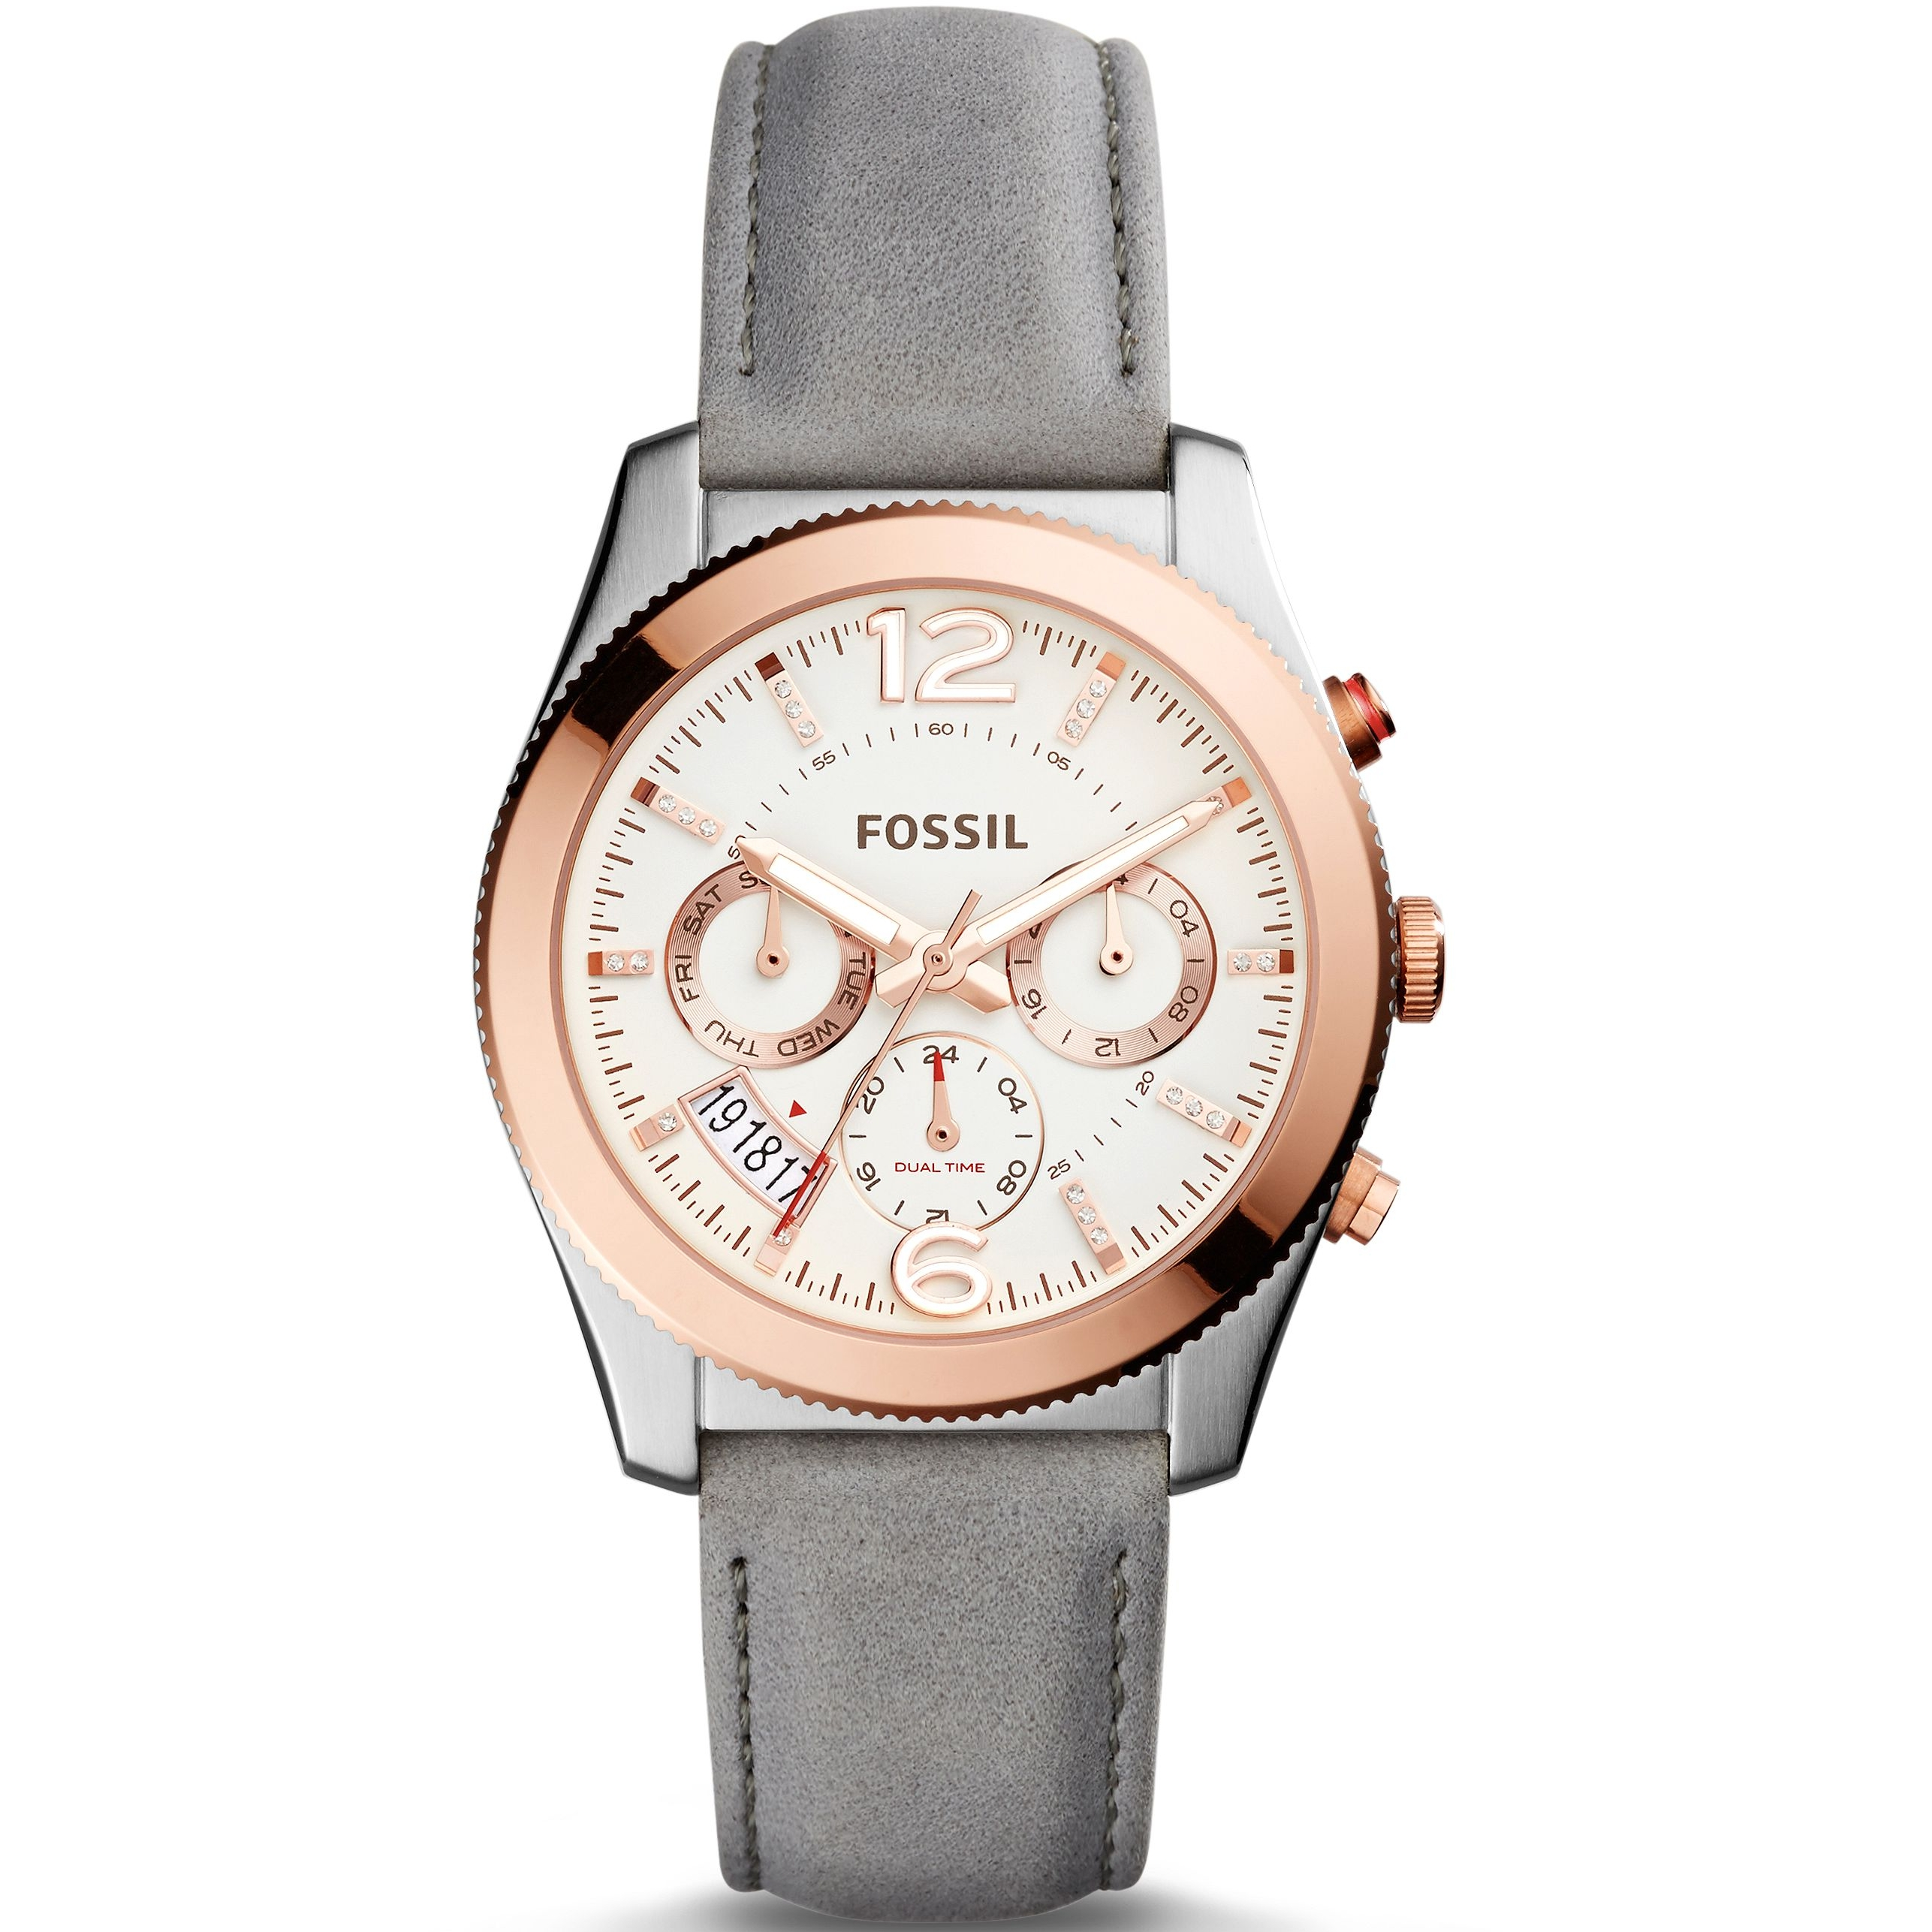 have christmas ladies kors this blind com dainty only chronograph absolutly was for decided wrists blinds to and myself treat about weight worried best parker size the i watches michael watch decision as watchshop face